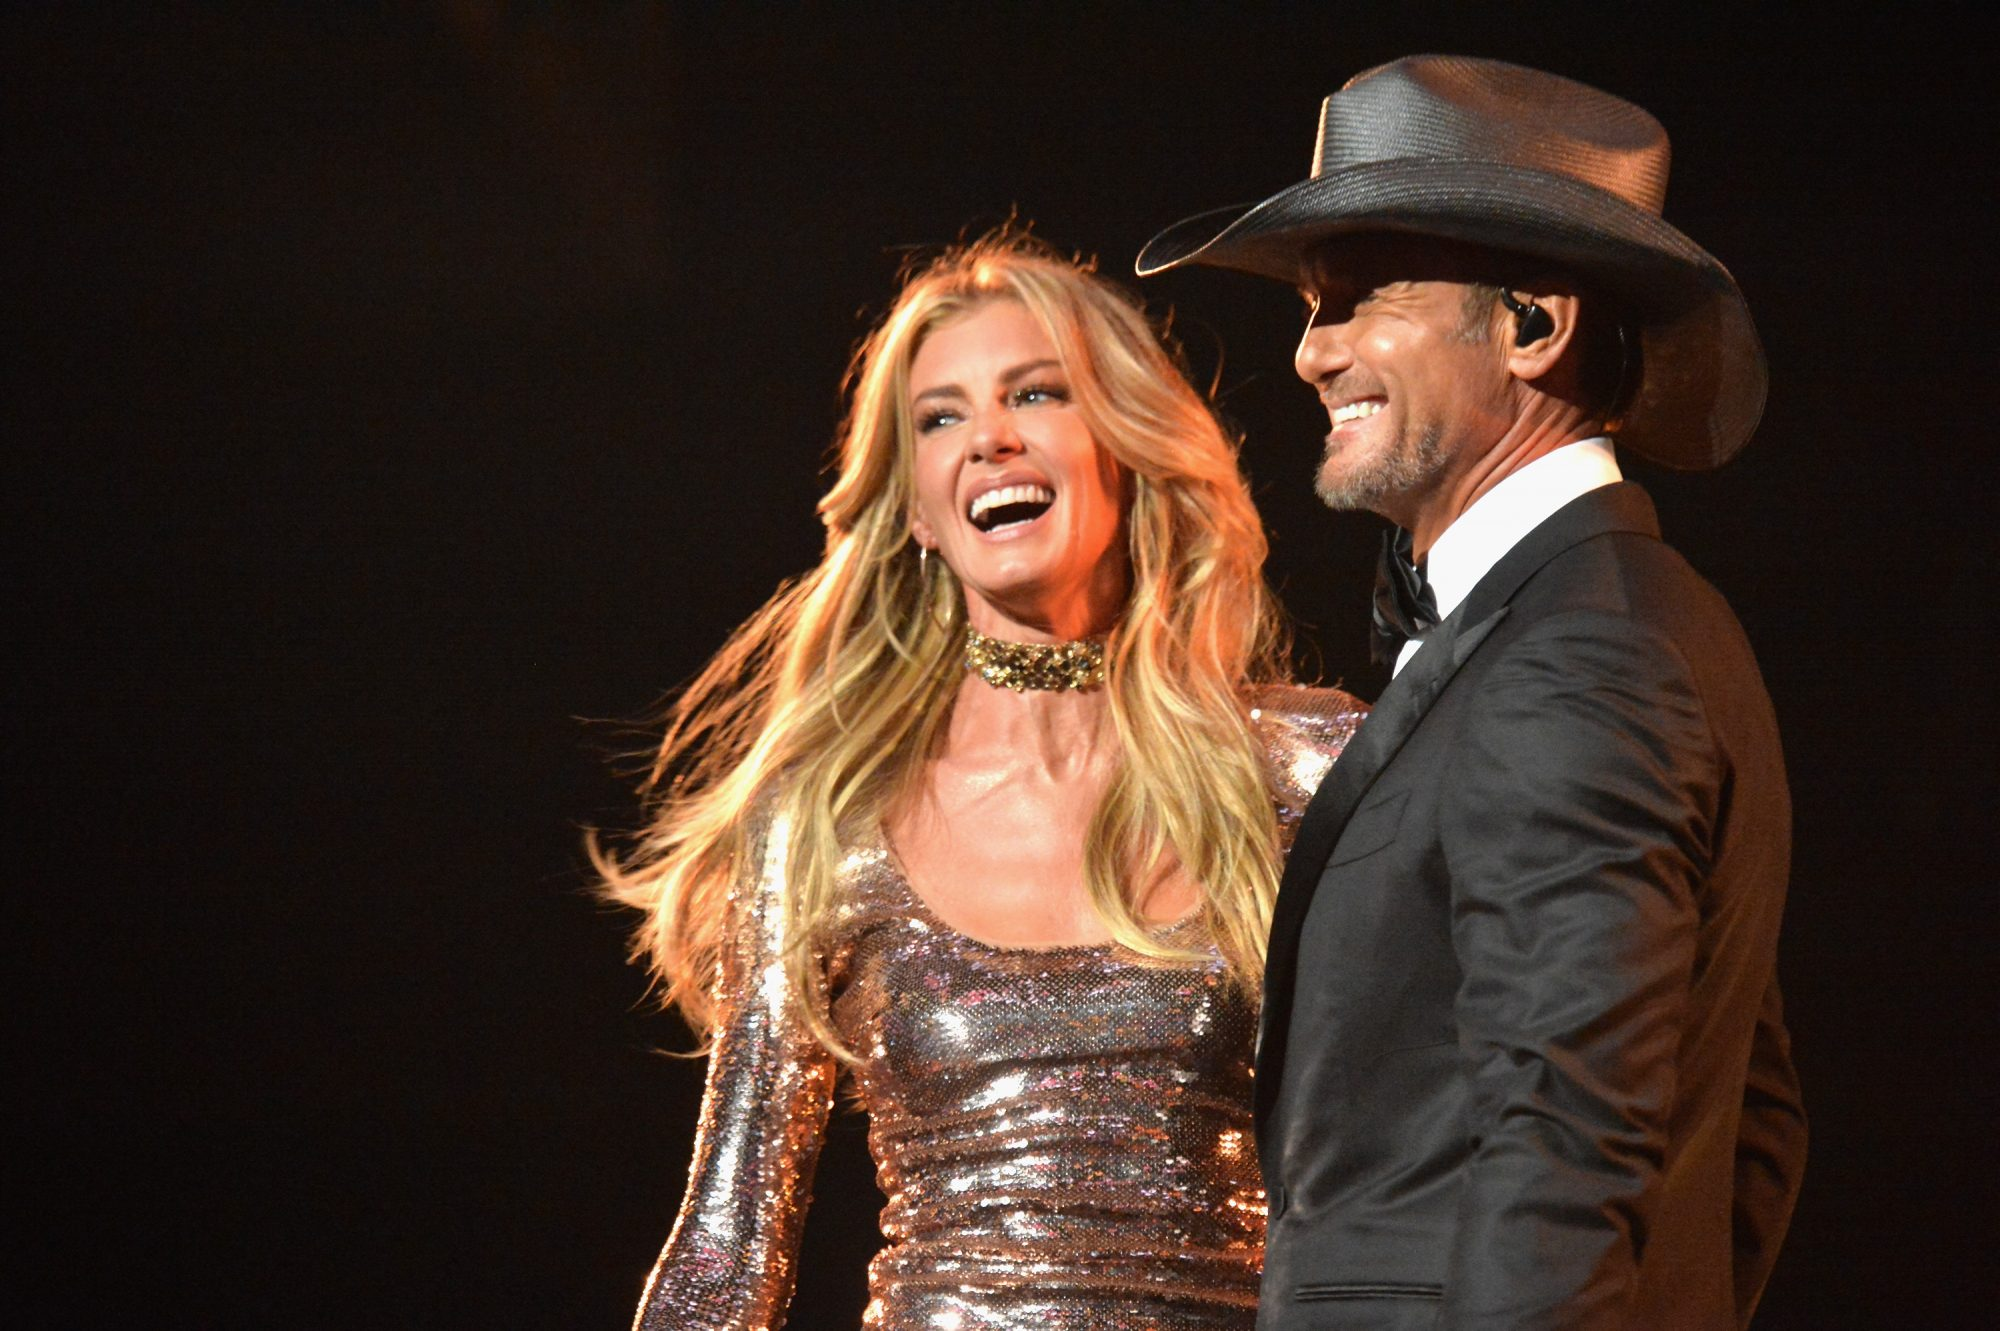 Tim McGraw & Faith Hill's Love Story